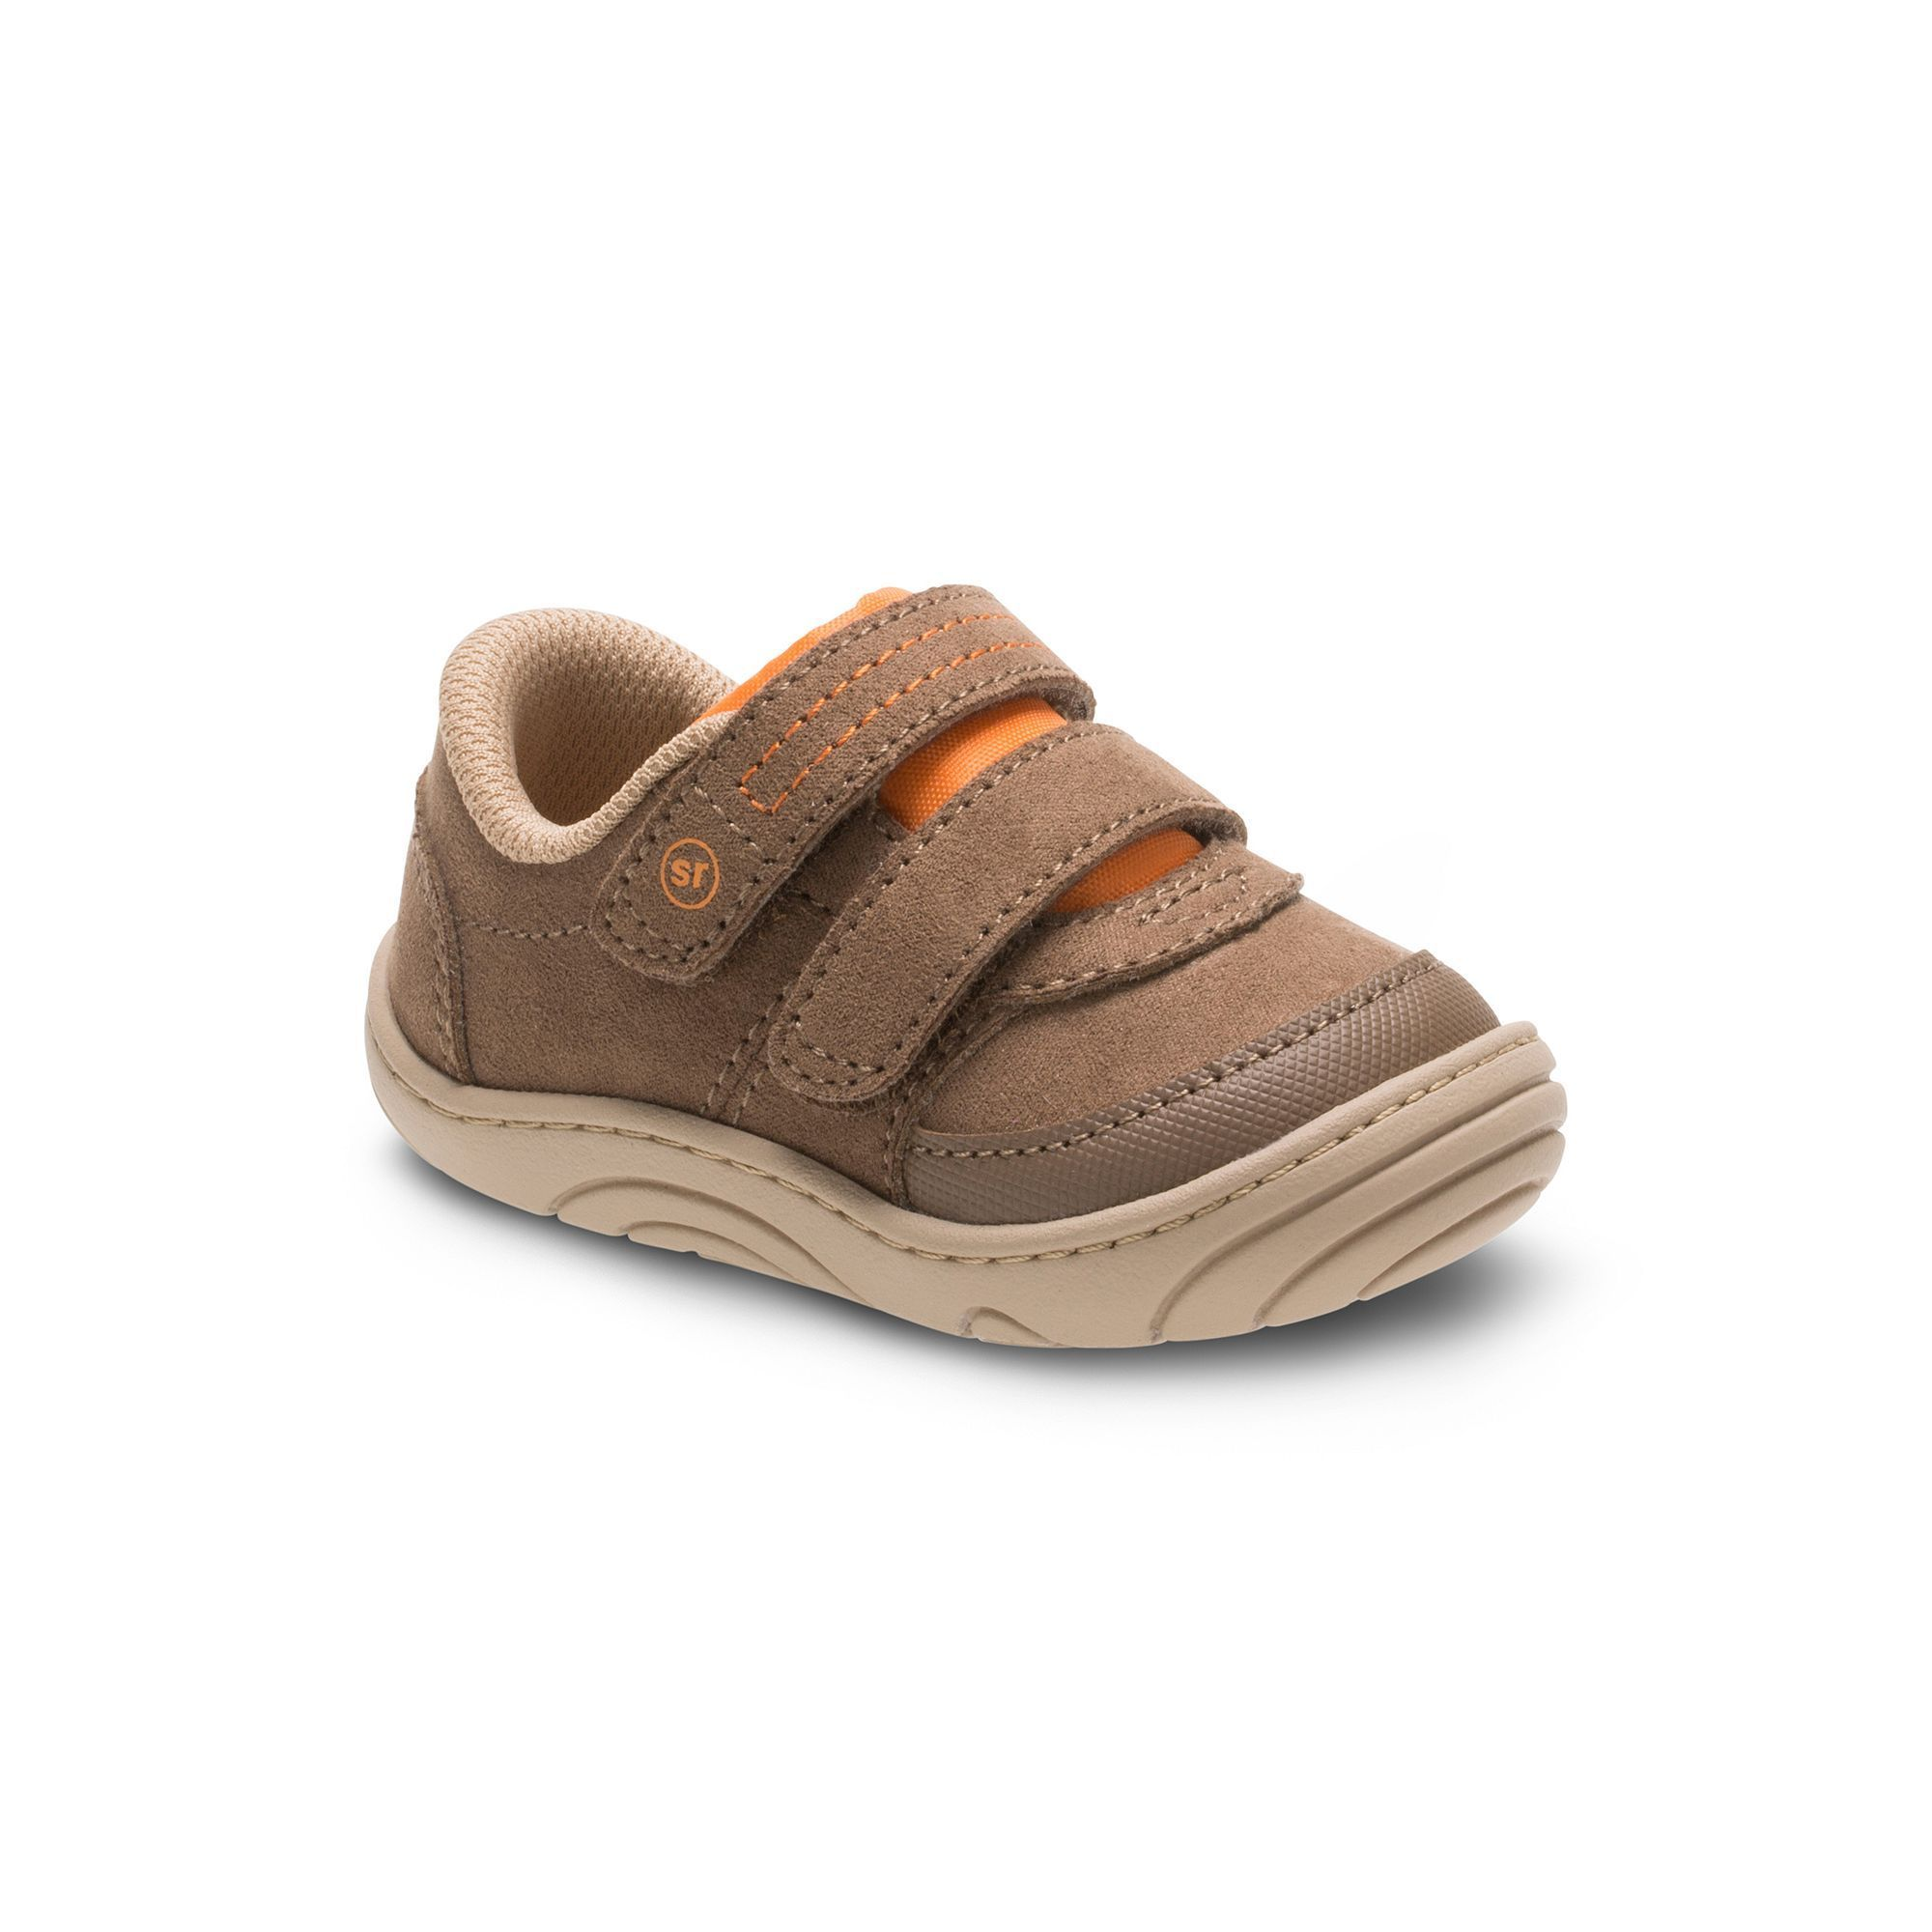 Stride Rite Kyle Baby Toddler Boys Sneakers Size 6 T Med Beige